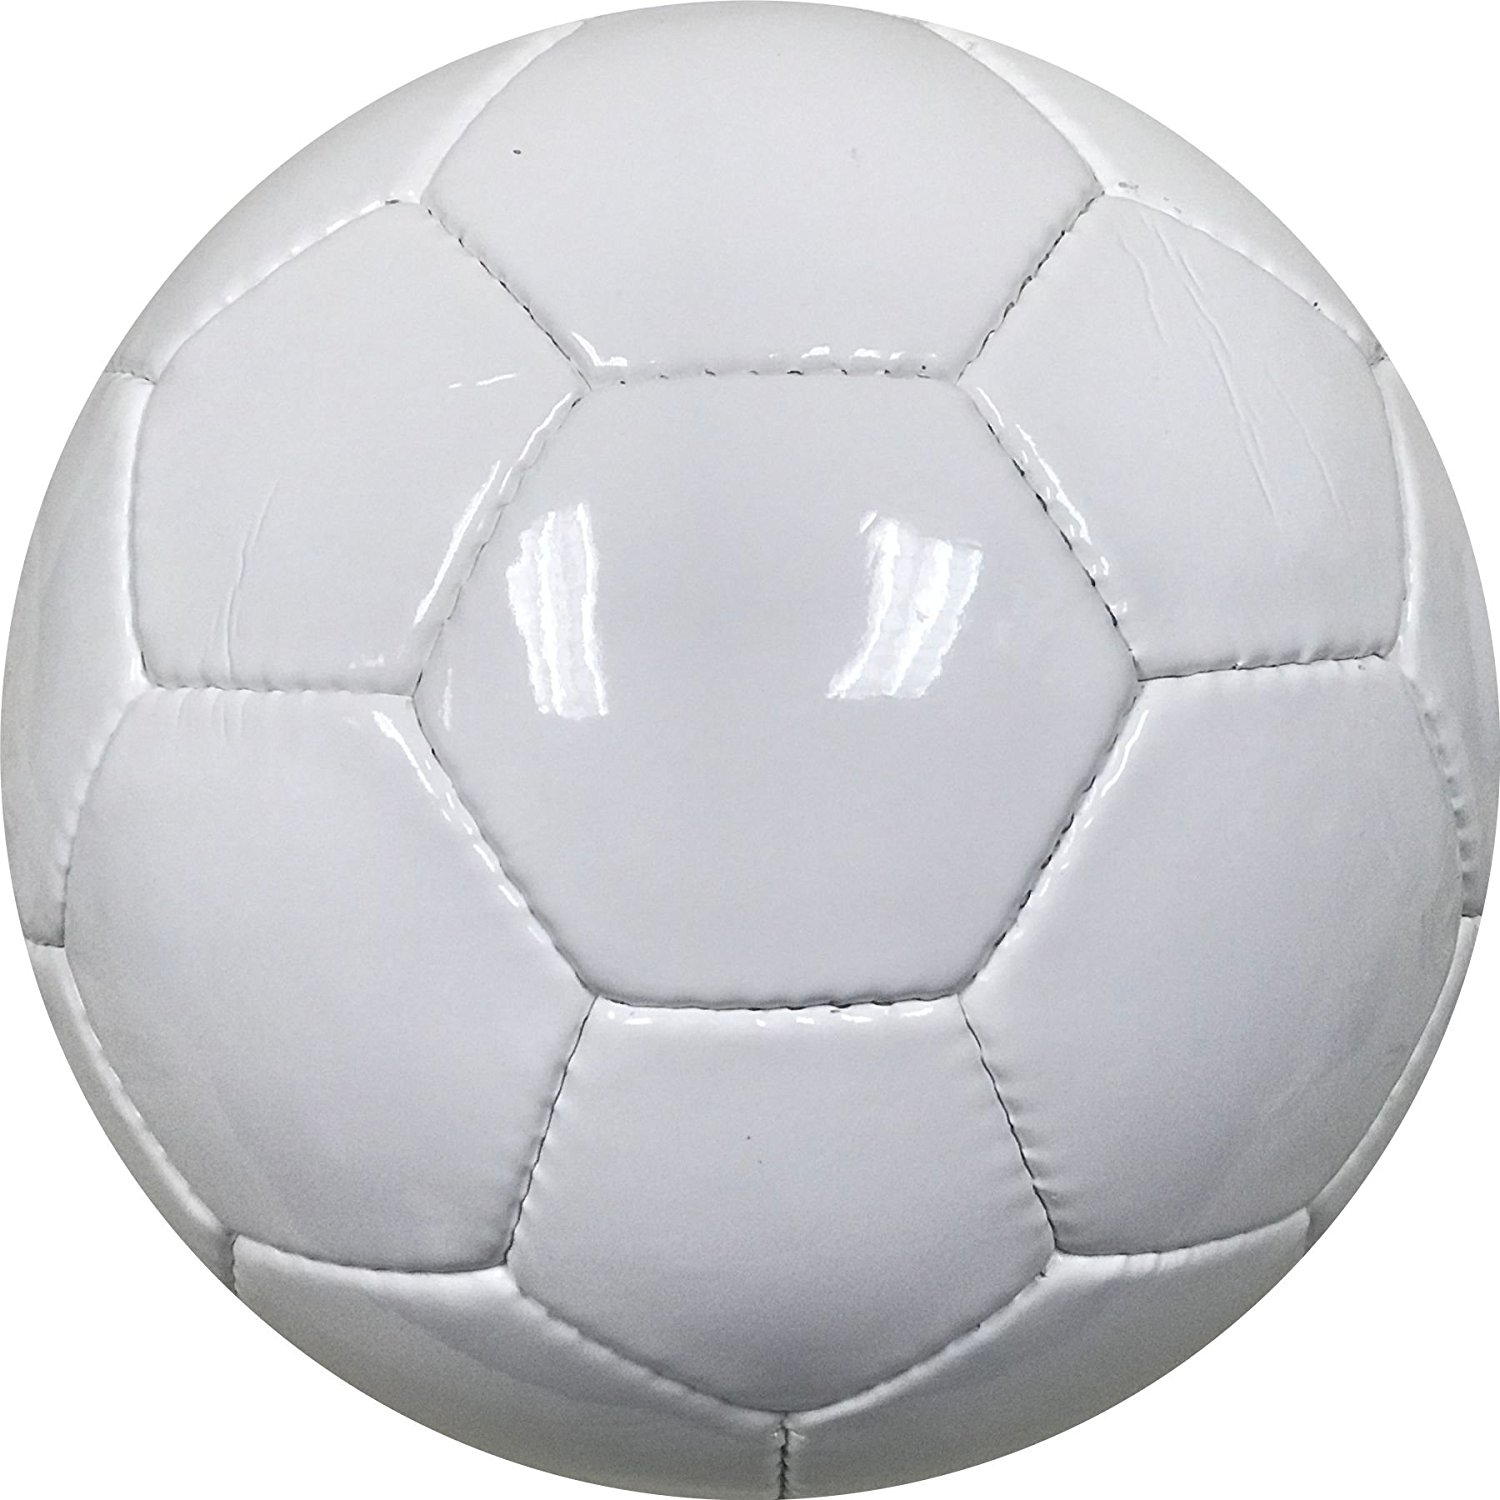 Amazon.com : All White Soccer Ball for Autographs Painting or for ...